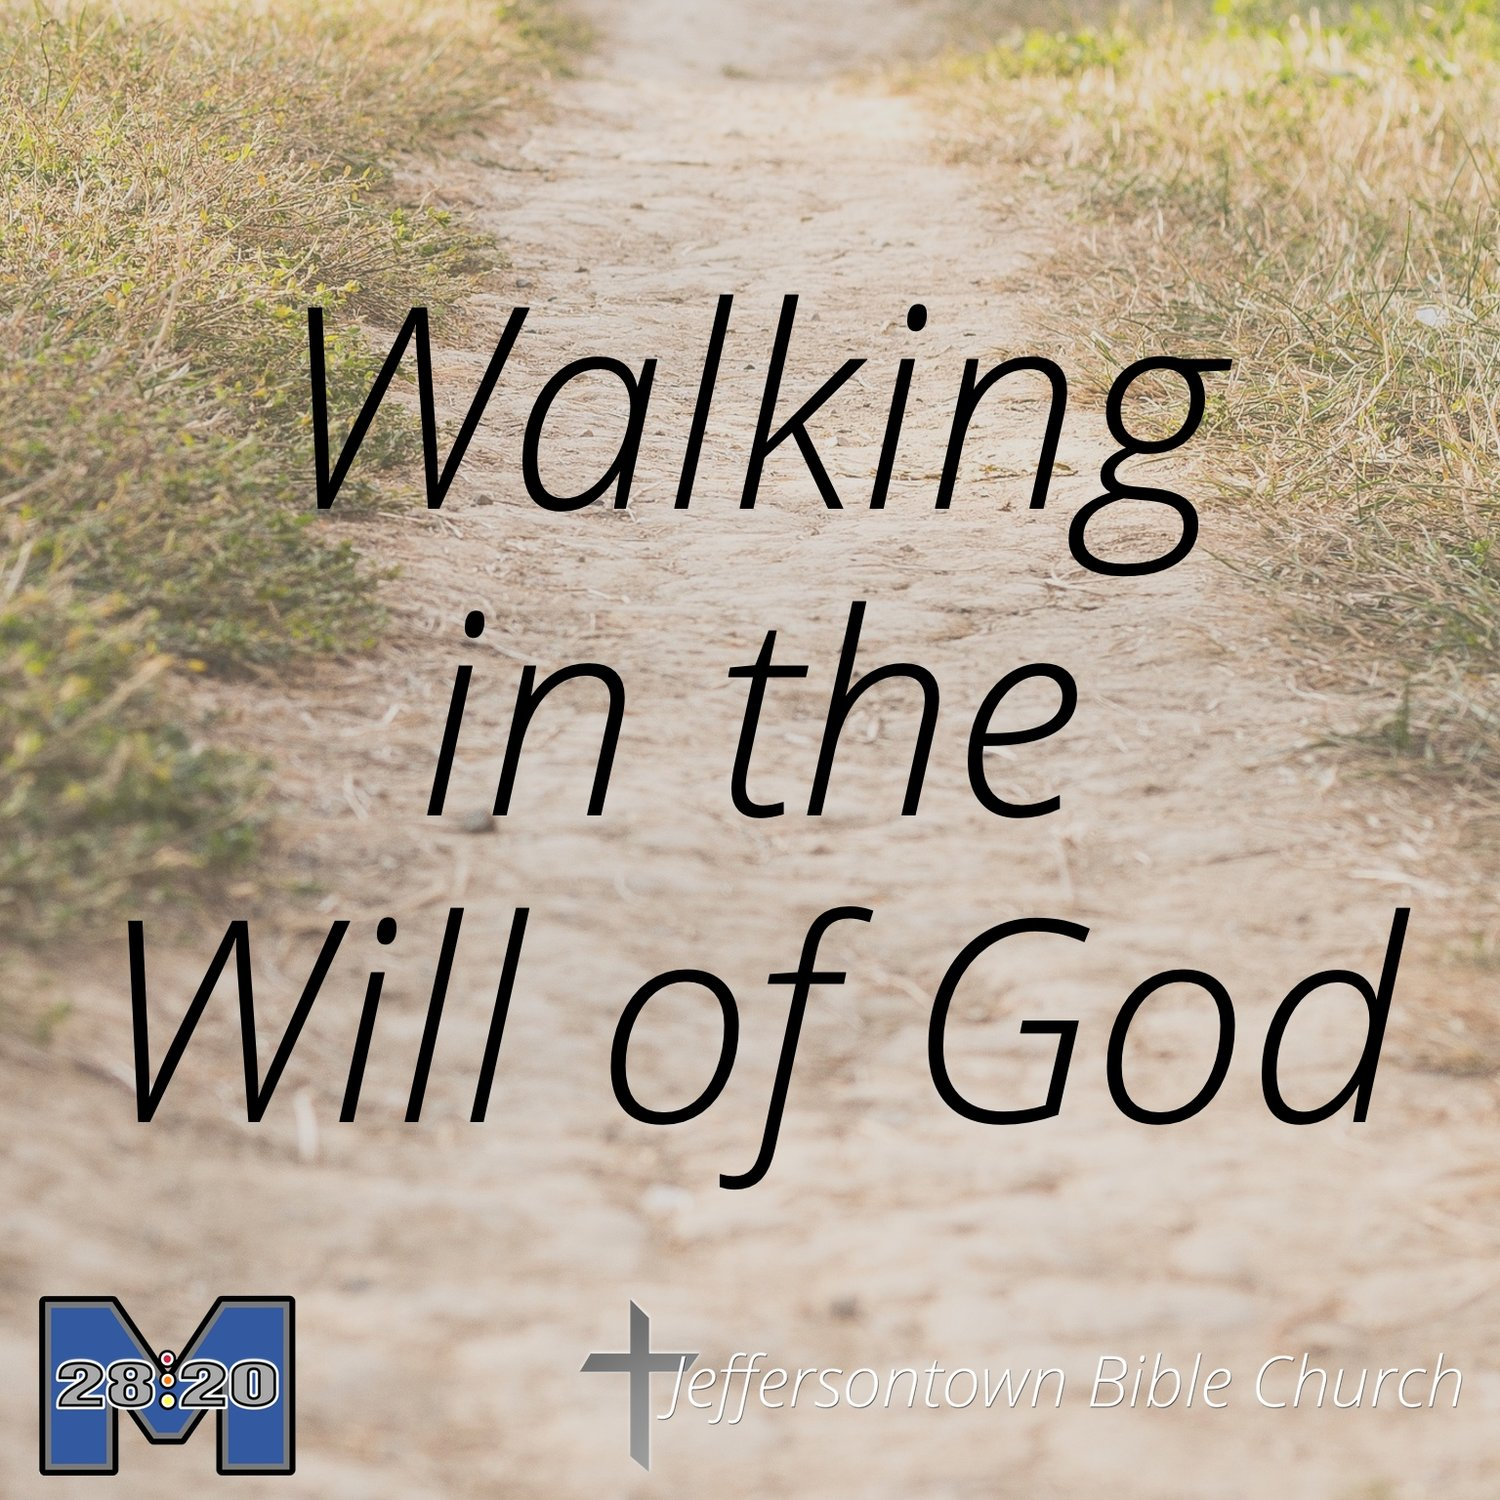 M28:20 - Walk in Contentment with God's Providence - 1 Corinthians 7:17